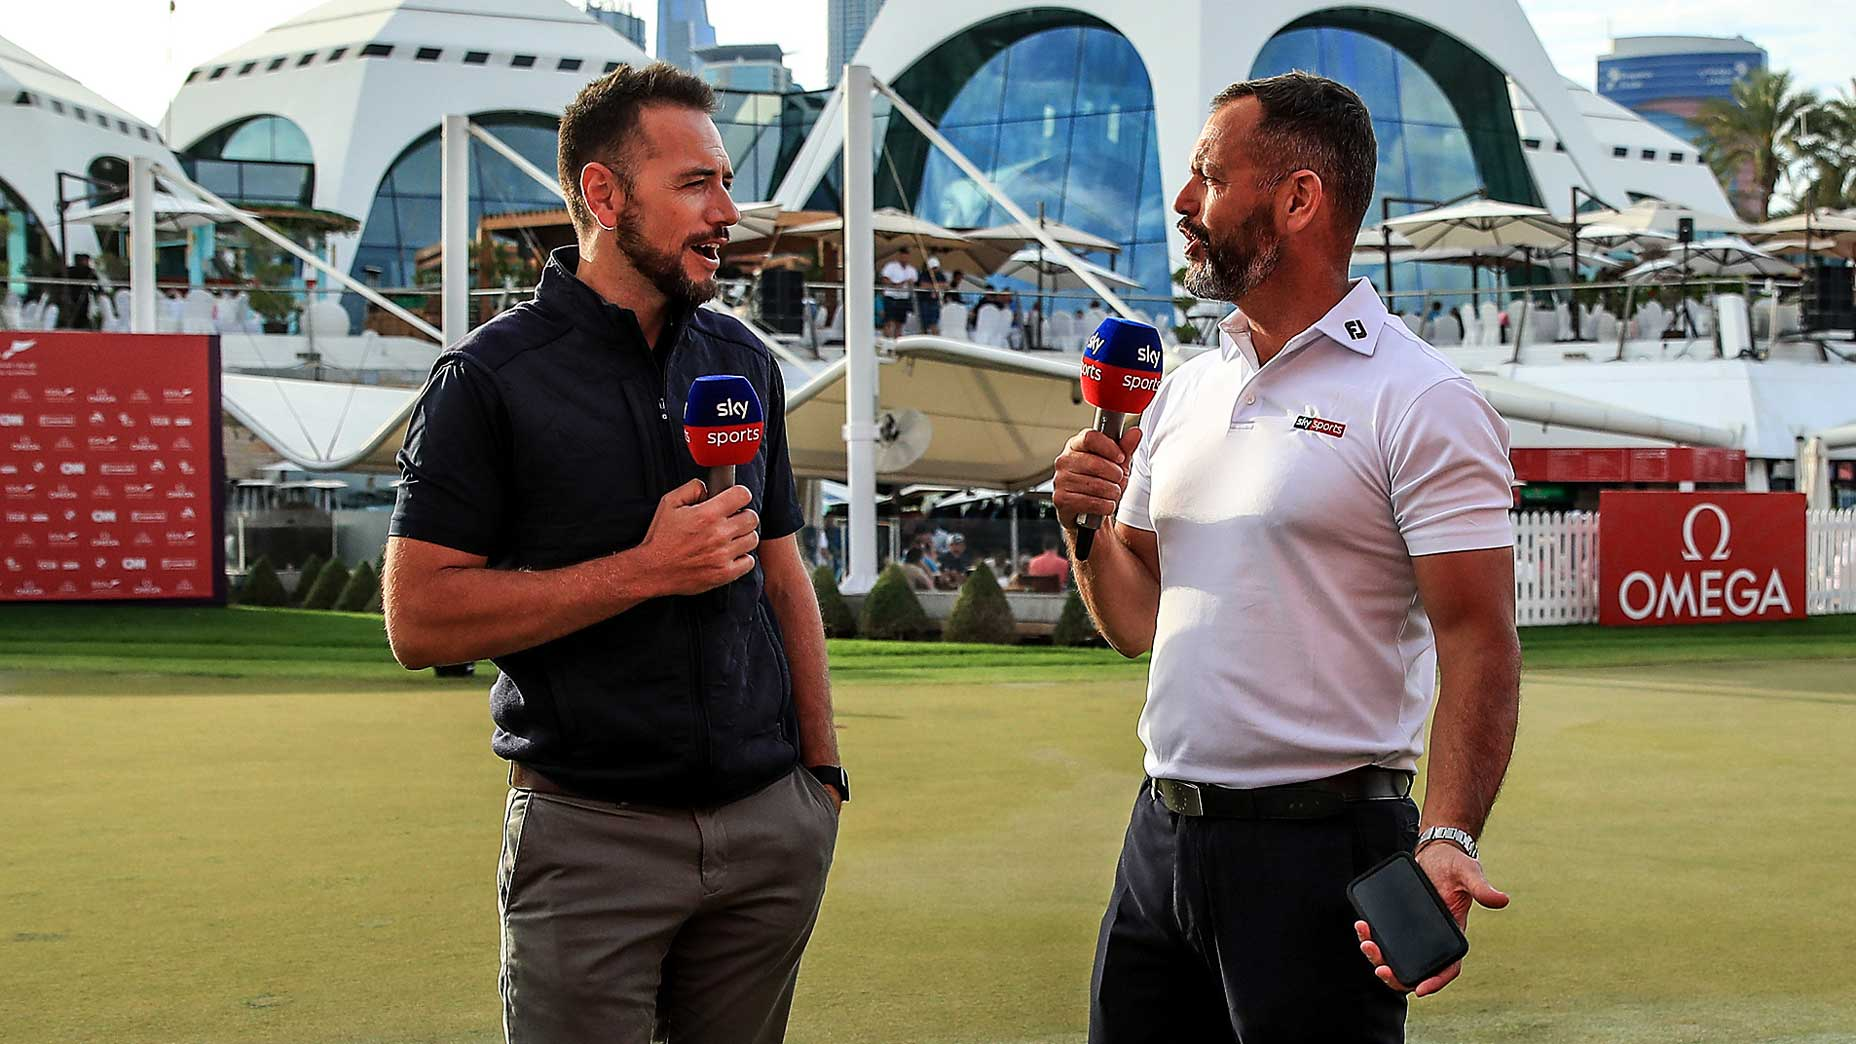 Sky Sports' Nick Dougherty and Andrew Coltart at the Dubai Desert Classic earlier this year.